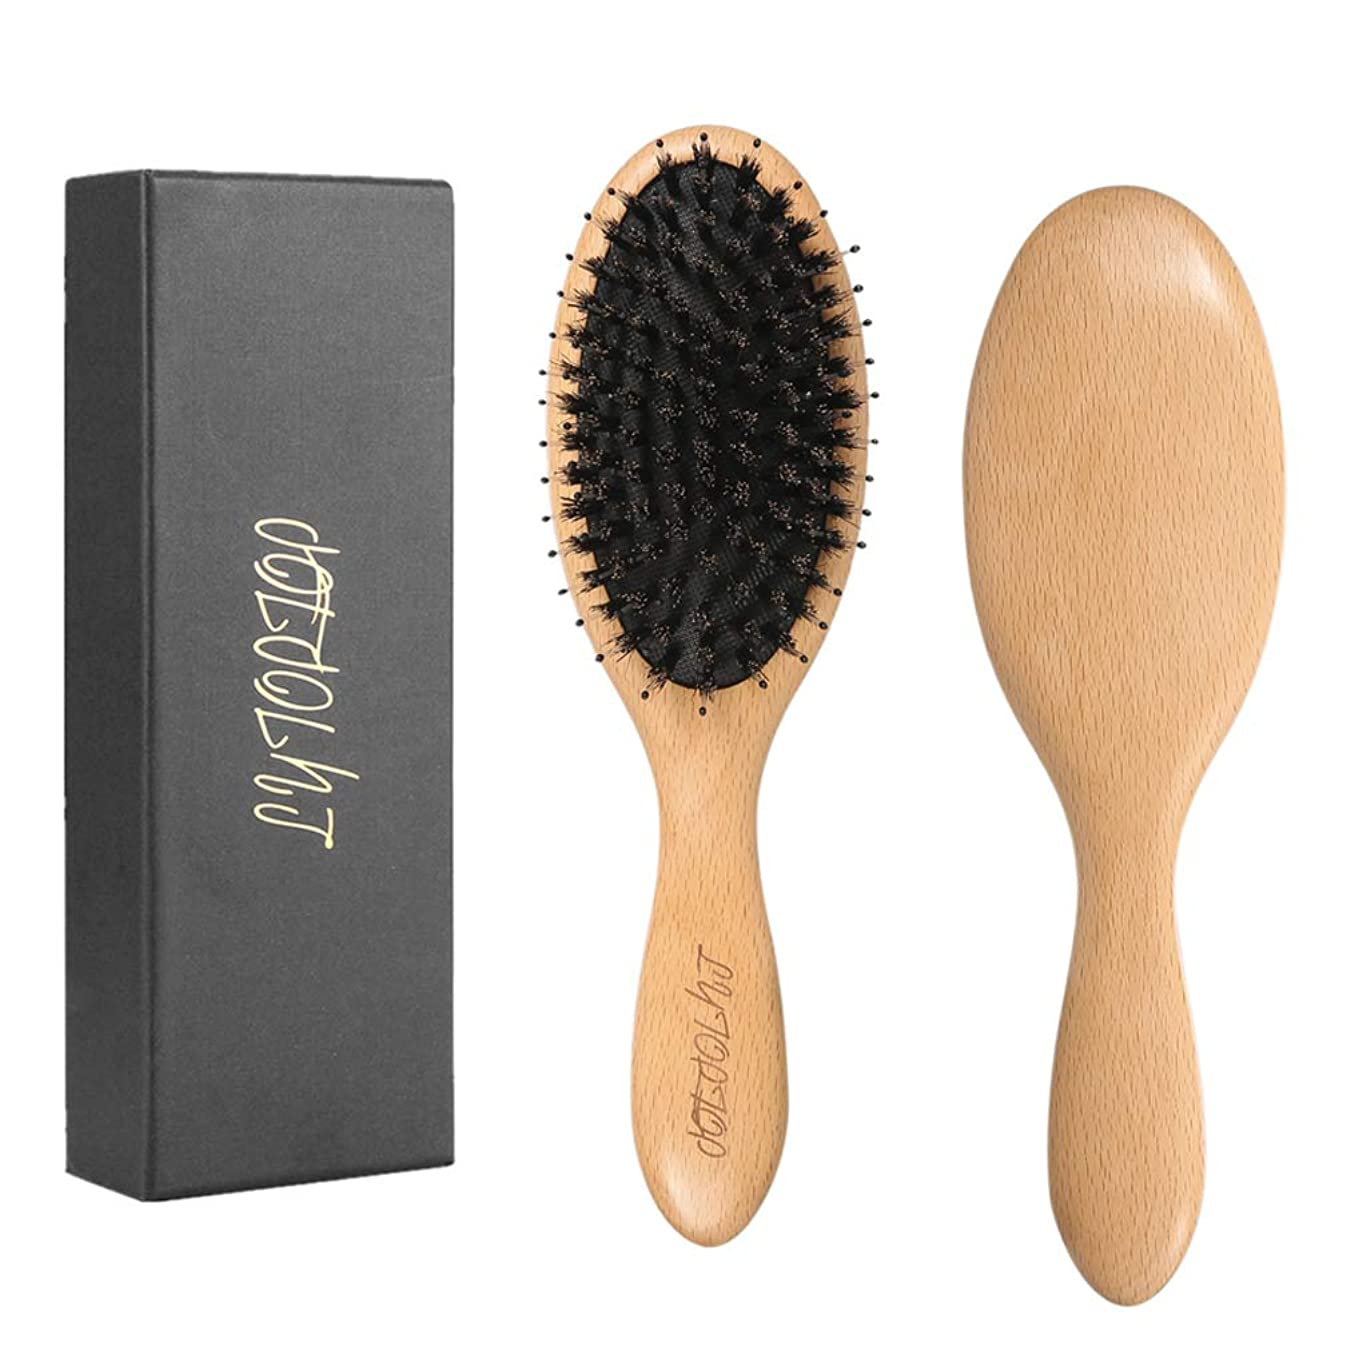 Boar Bristle Hair Brush for Men & Women-Natural Beech Professional Detangler Hairbrush with Wooden Paddle for Long,Thick,Curly,Dry or Damaged Hair-Reduce Hair Breakage and Frizzy, Giftbox Included